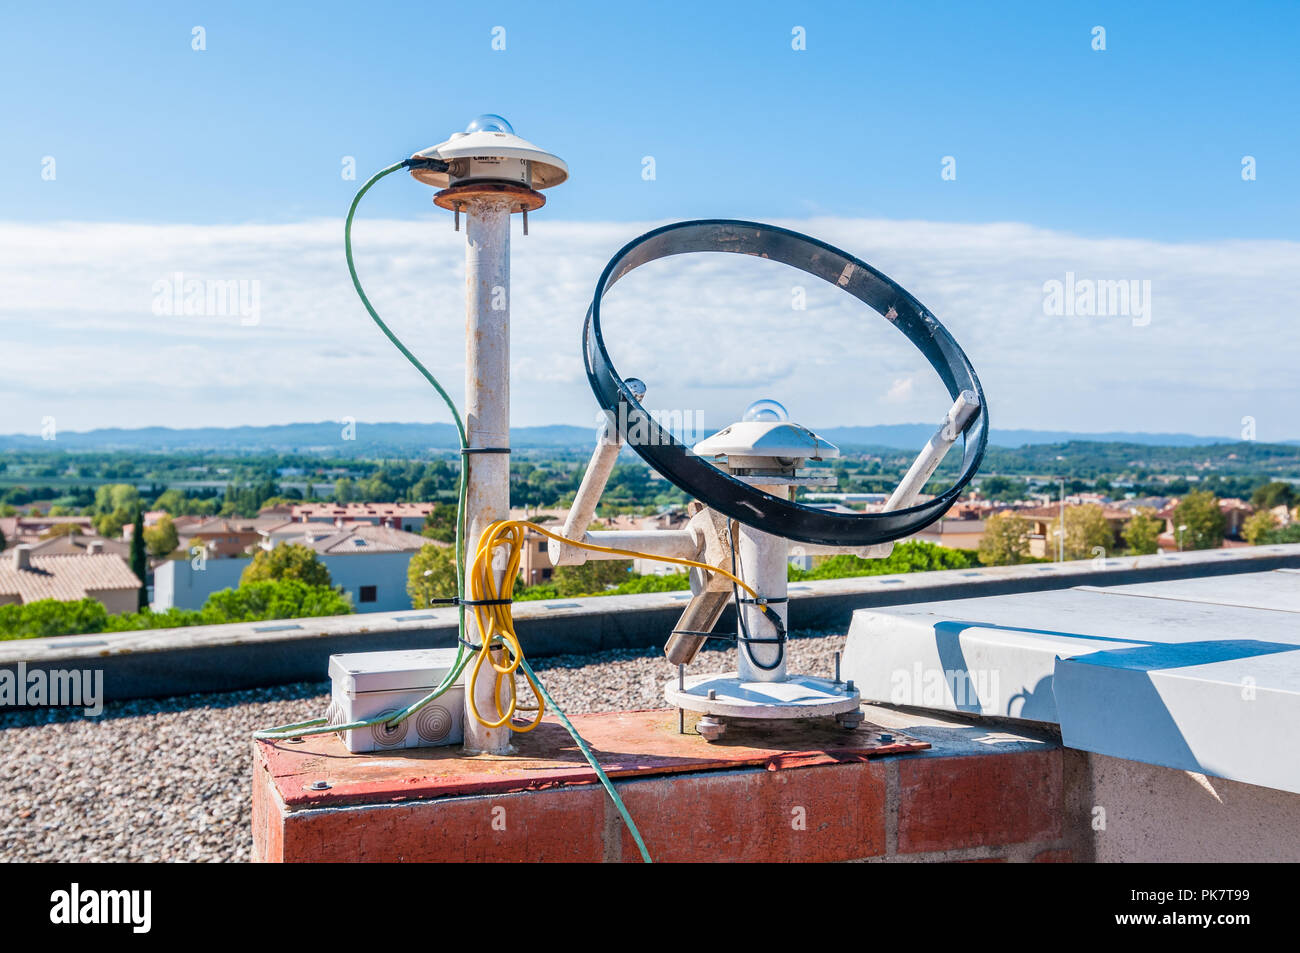 modern Sunshine recorder and  Pyranometer, type of actinometer used for measuring solar irradiance, on a roof Stock Photo